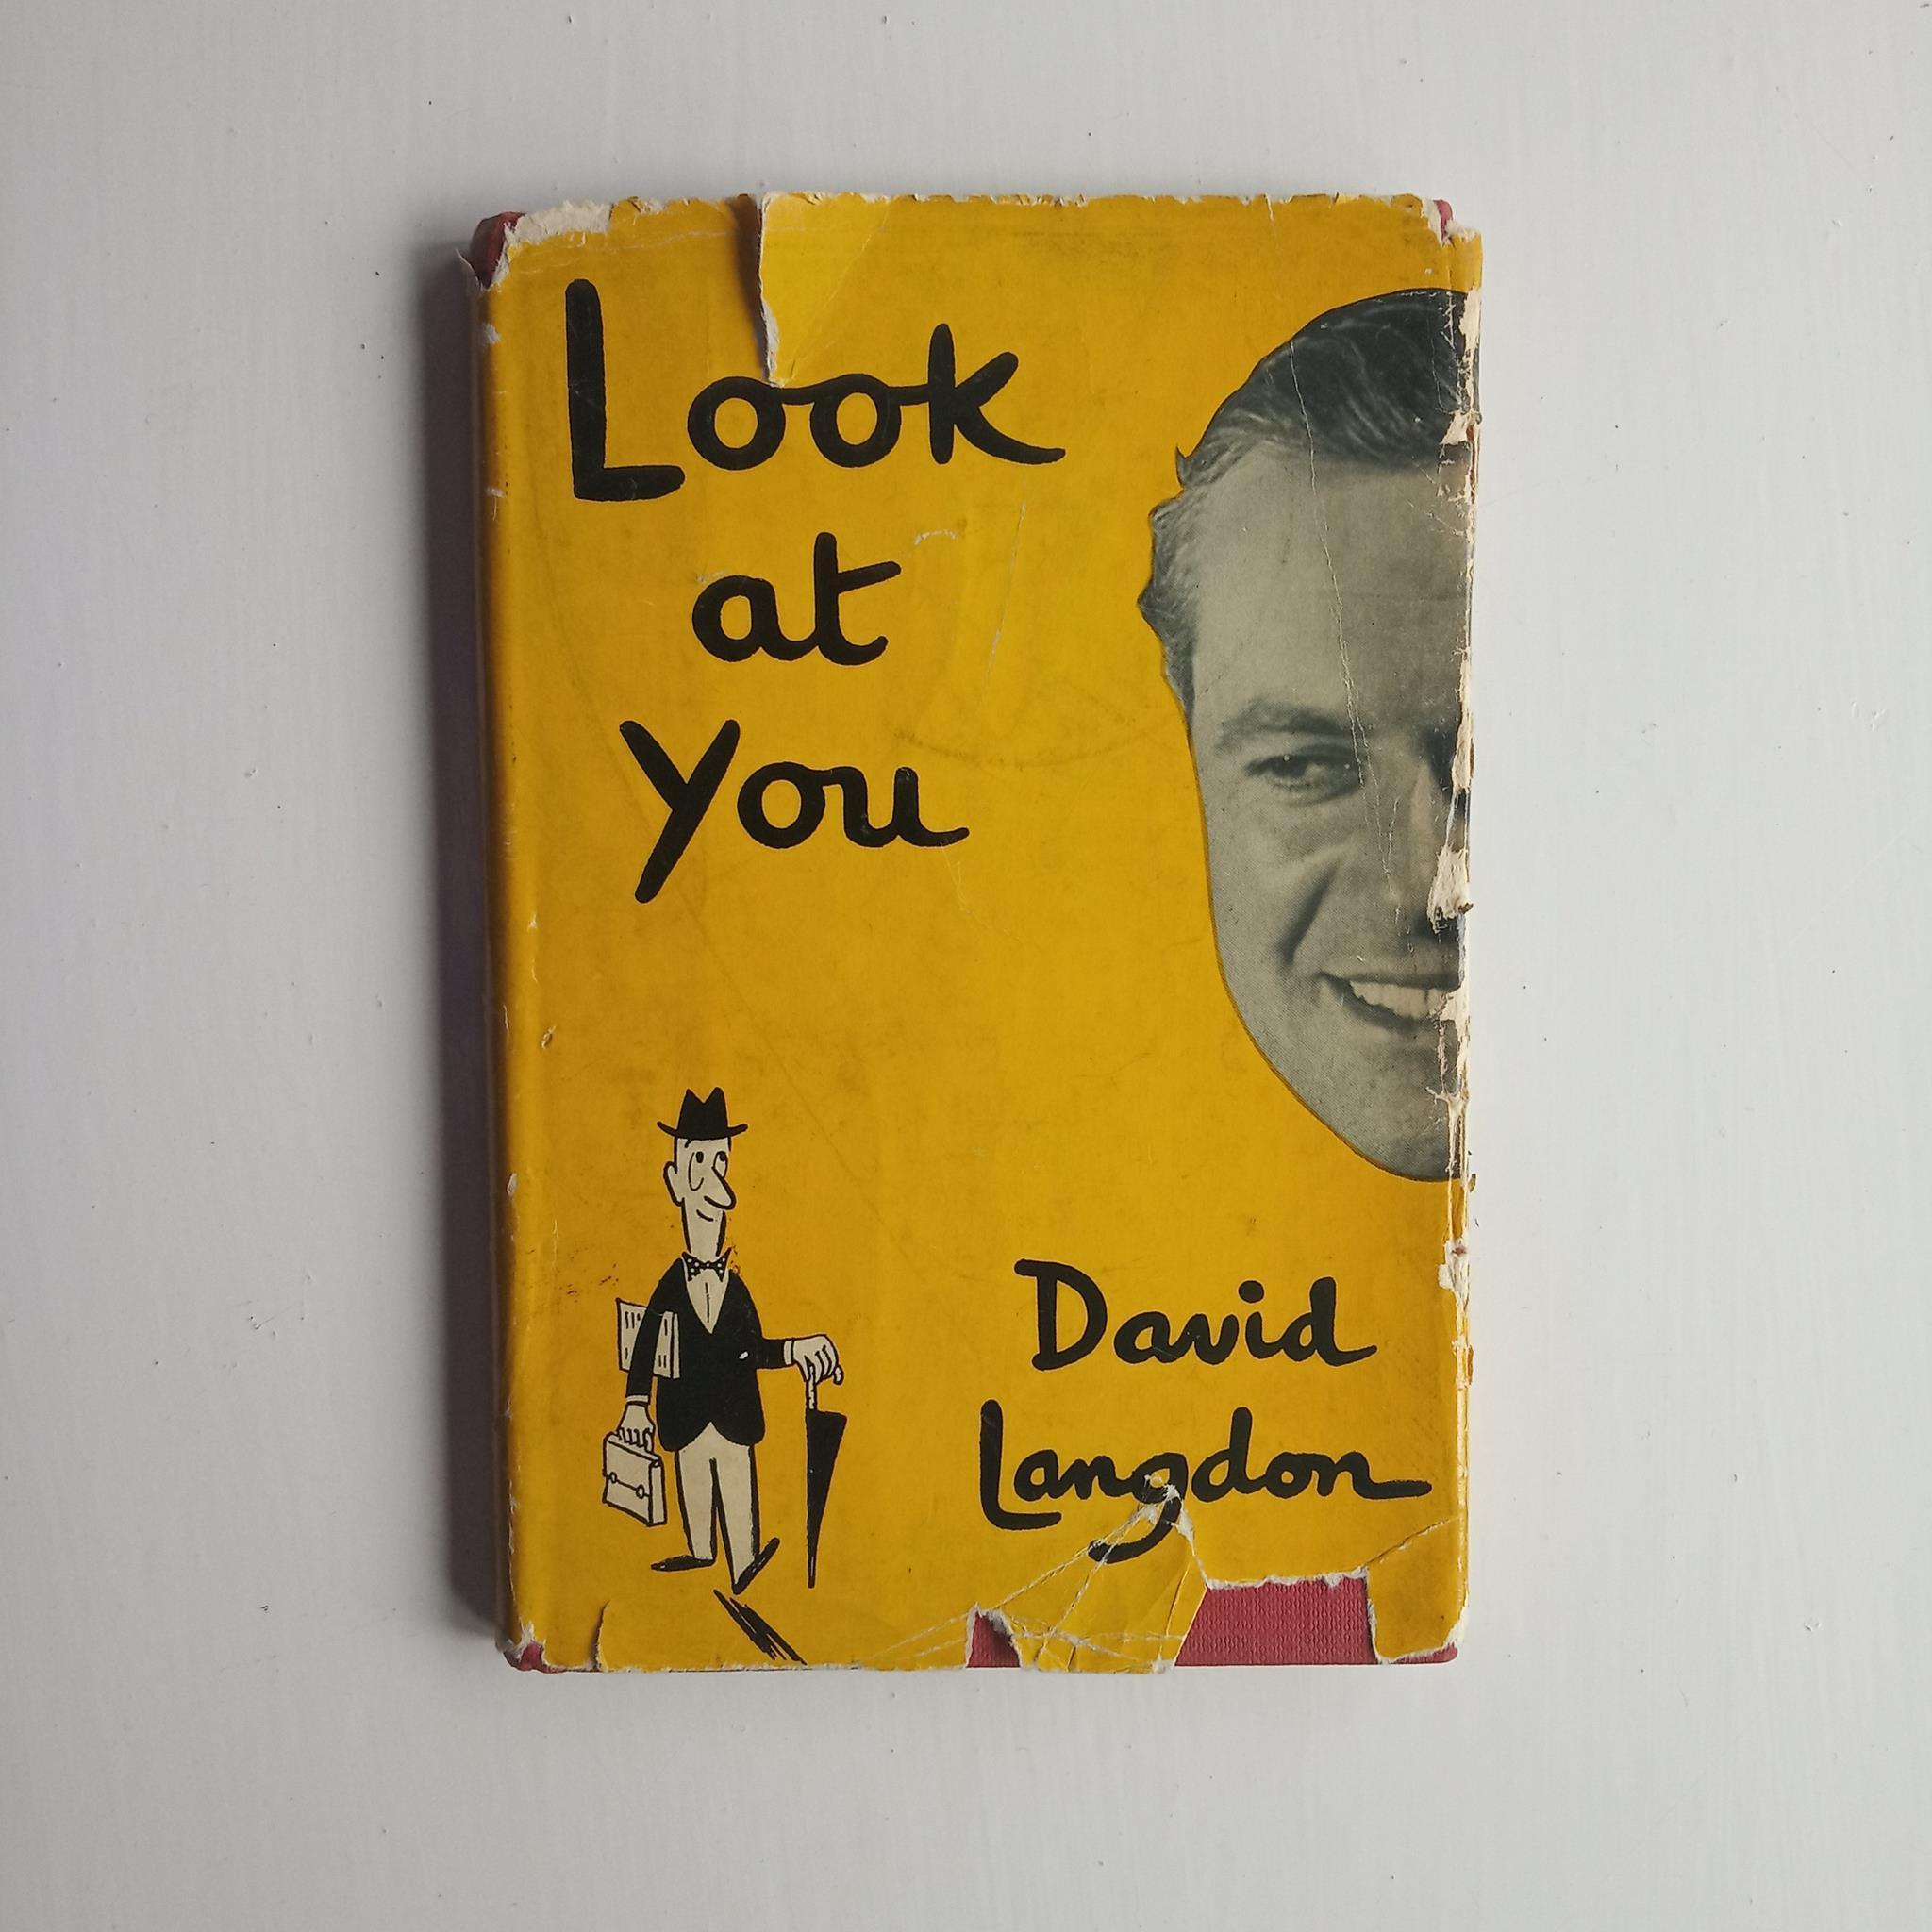 Look at You by David Langdon